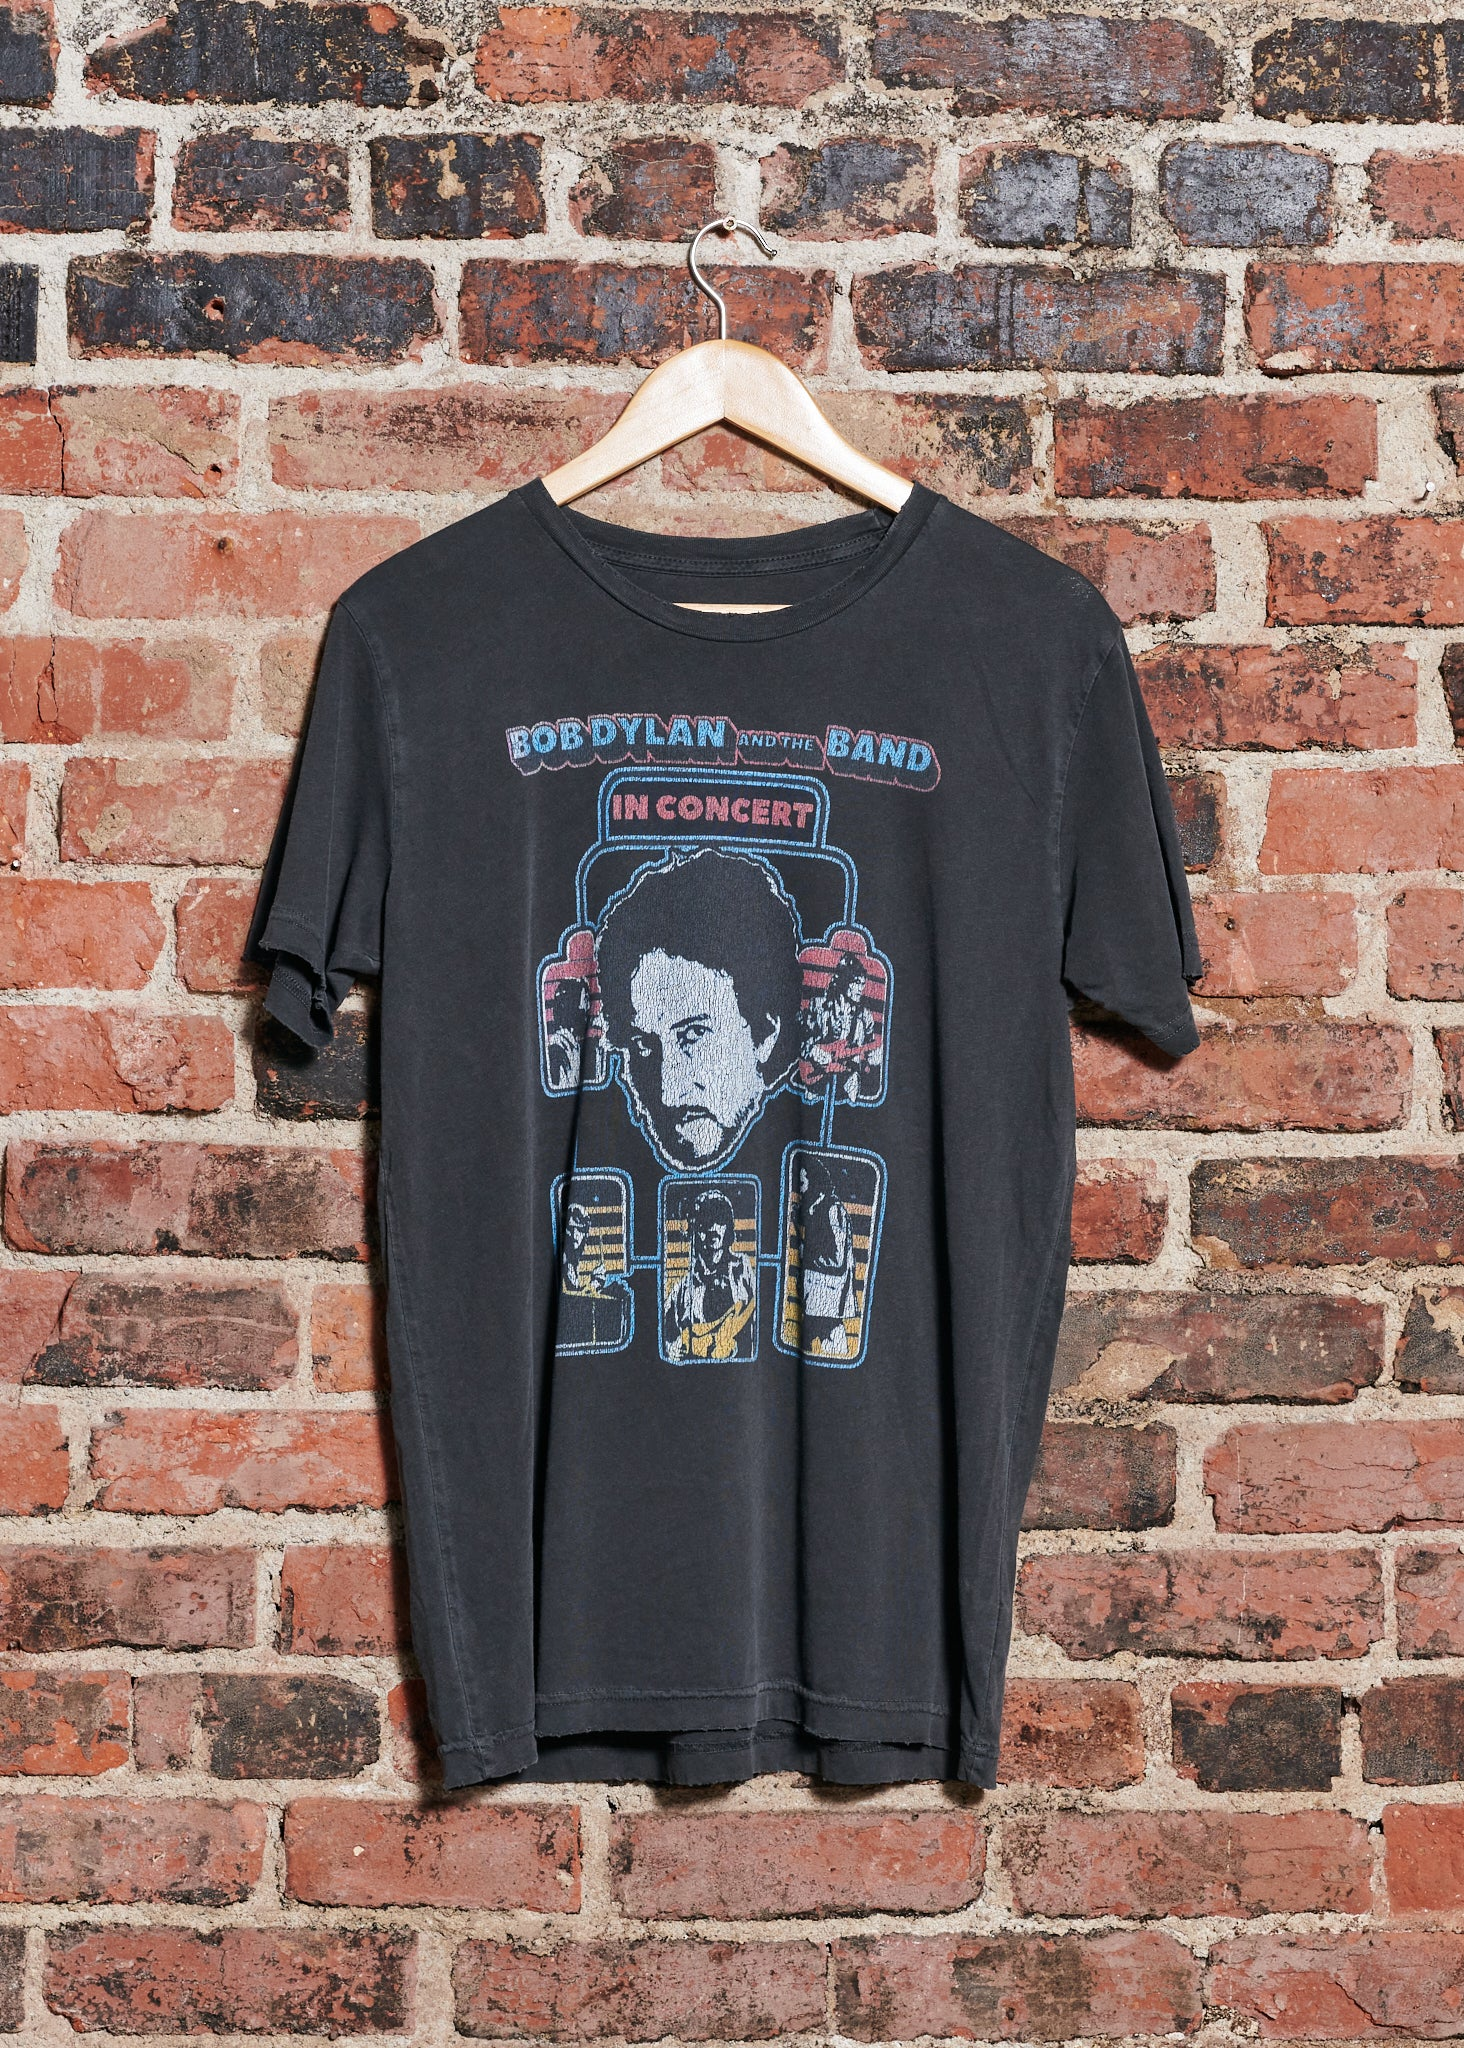 BOB DYLAN AND THE BAND IN CONCERT MEN'S CREW